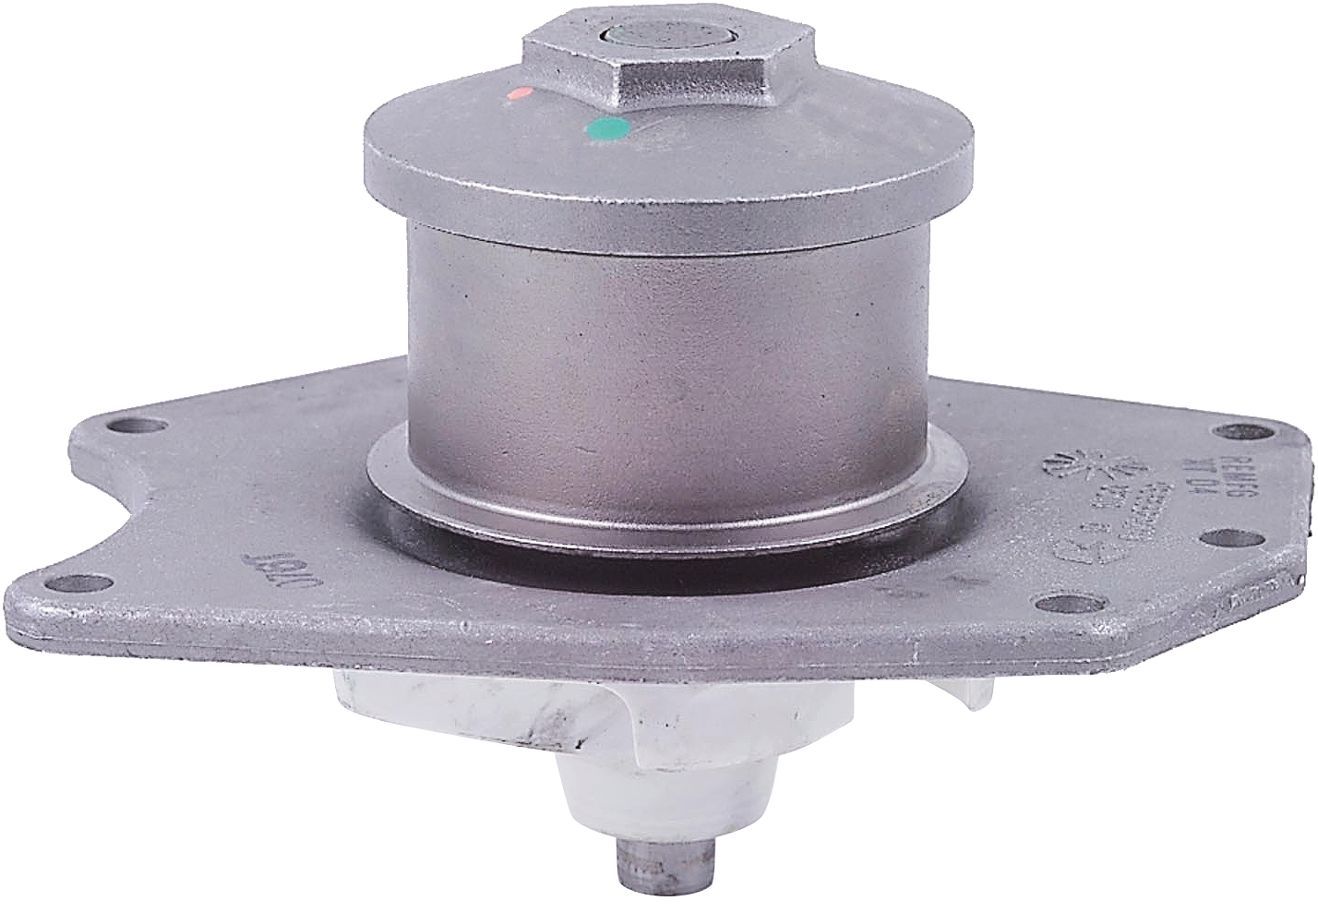 hight resolution of  1999 chrysler 300m engine water pump a1 58 553